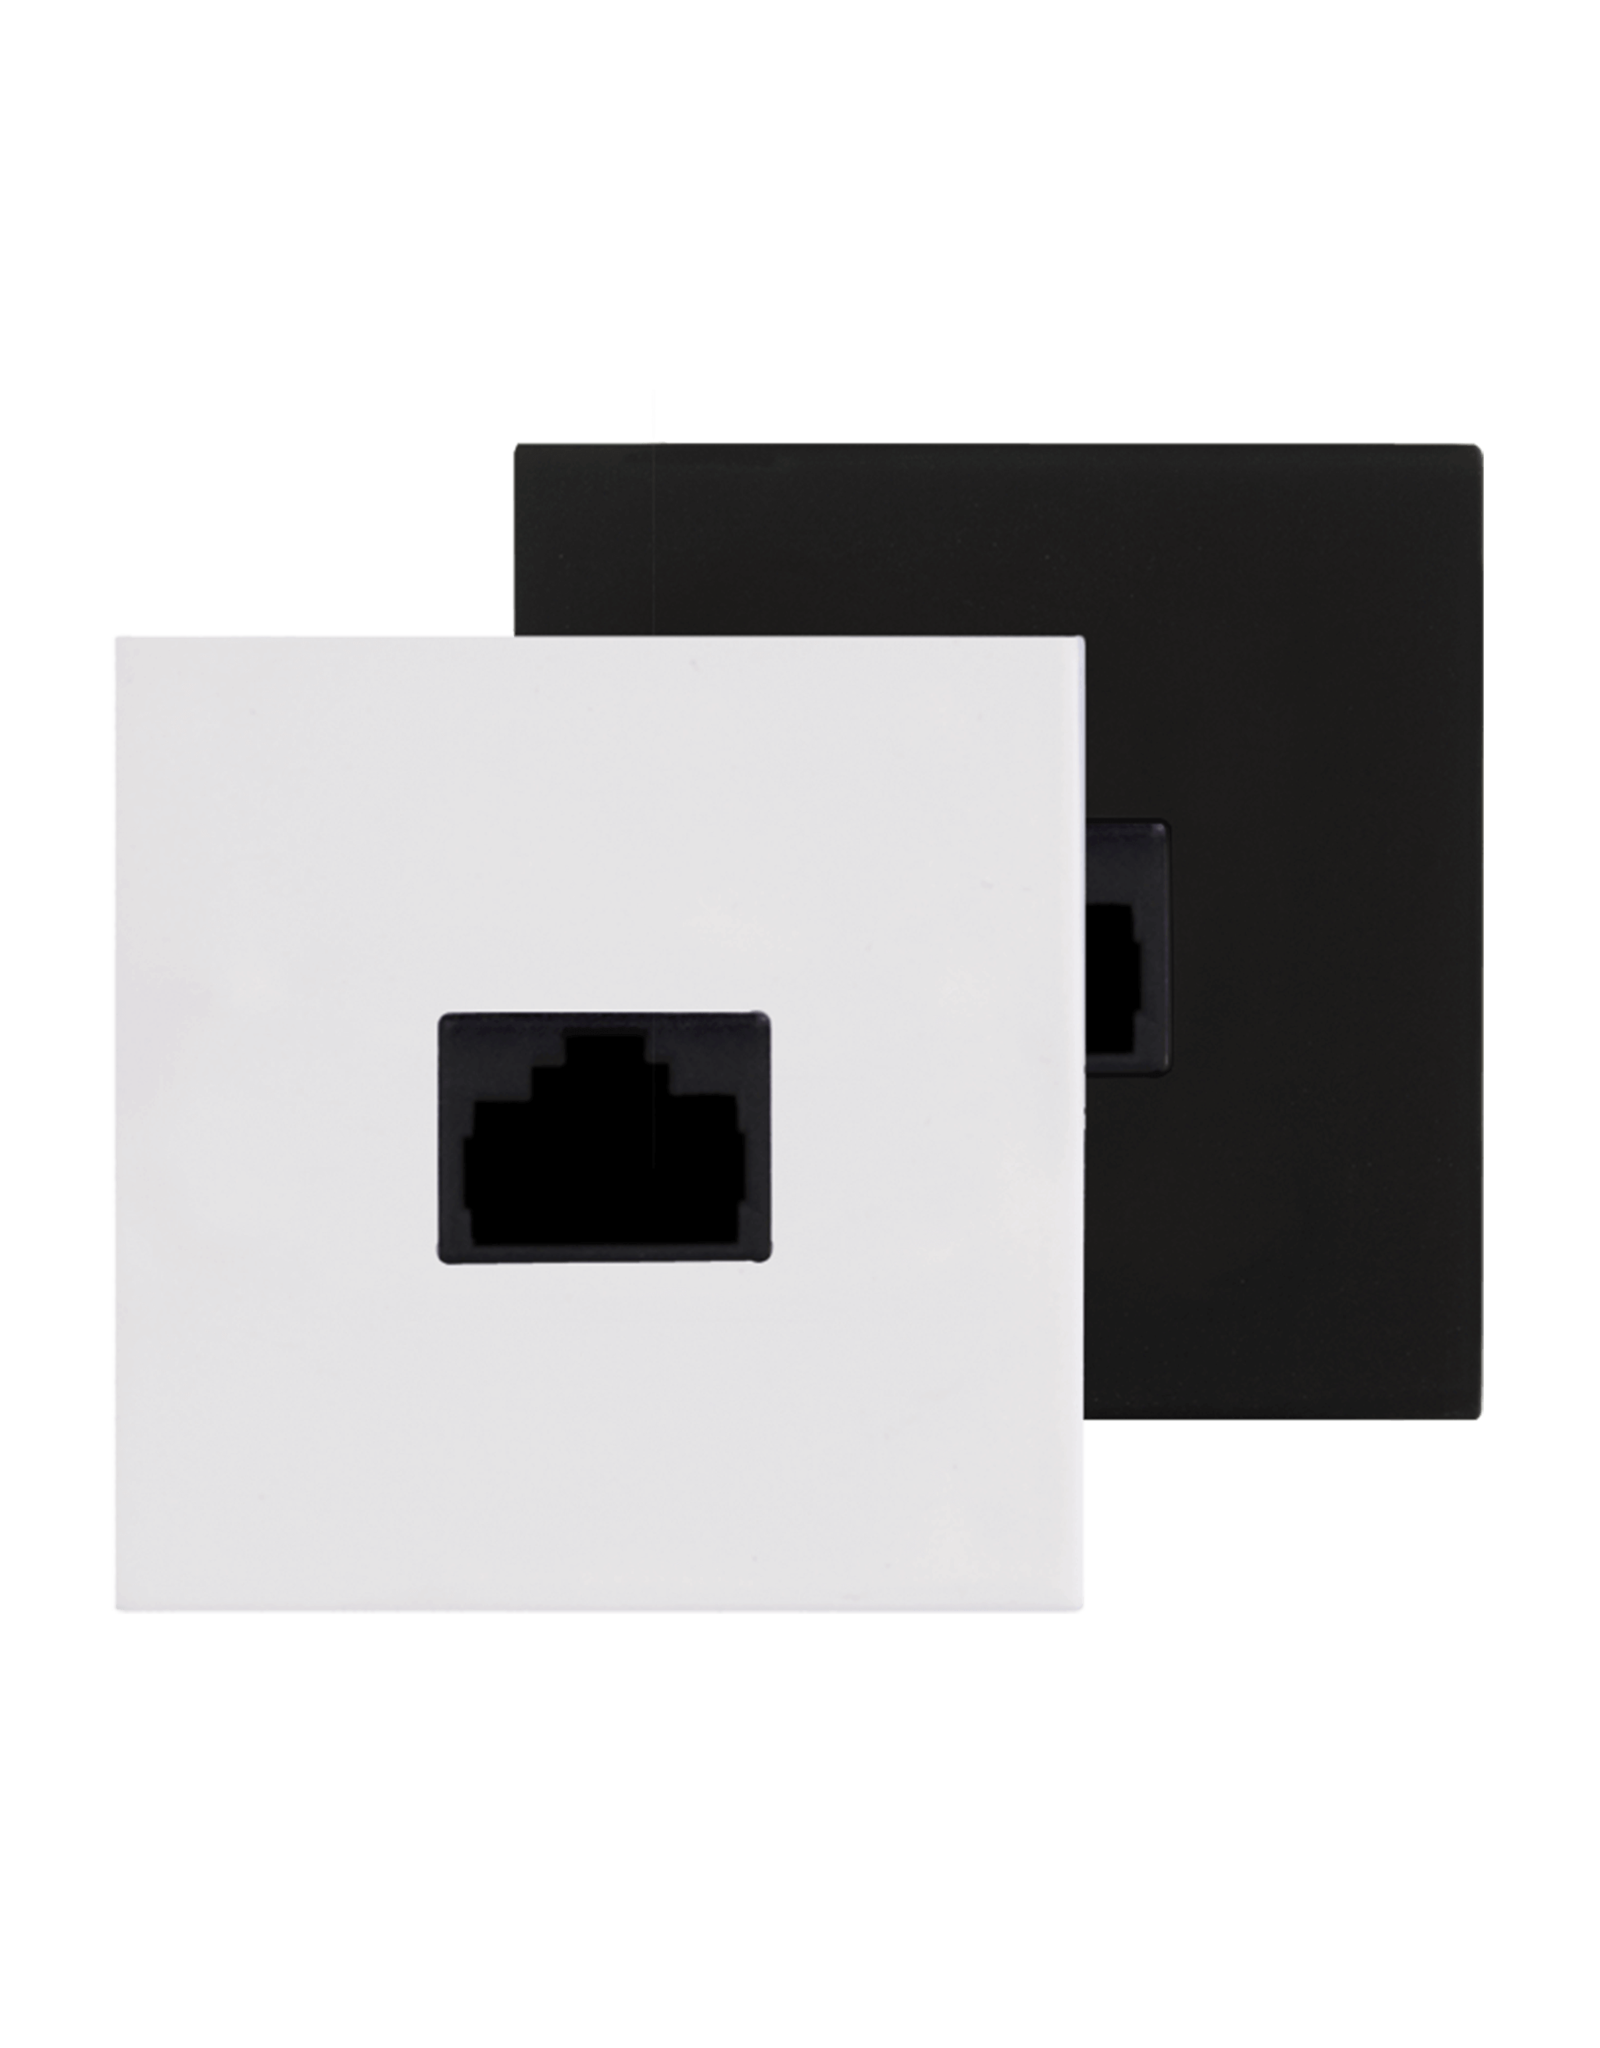 Audac Connection plate - rj45 + repeater - bticino White version